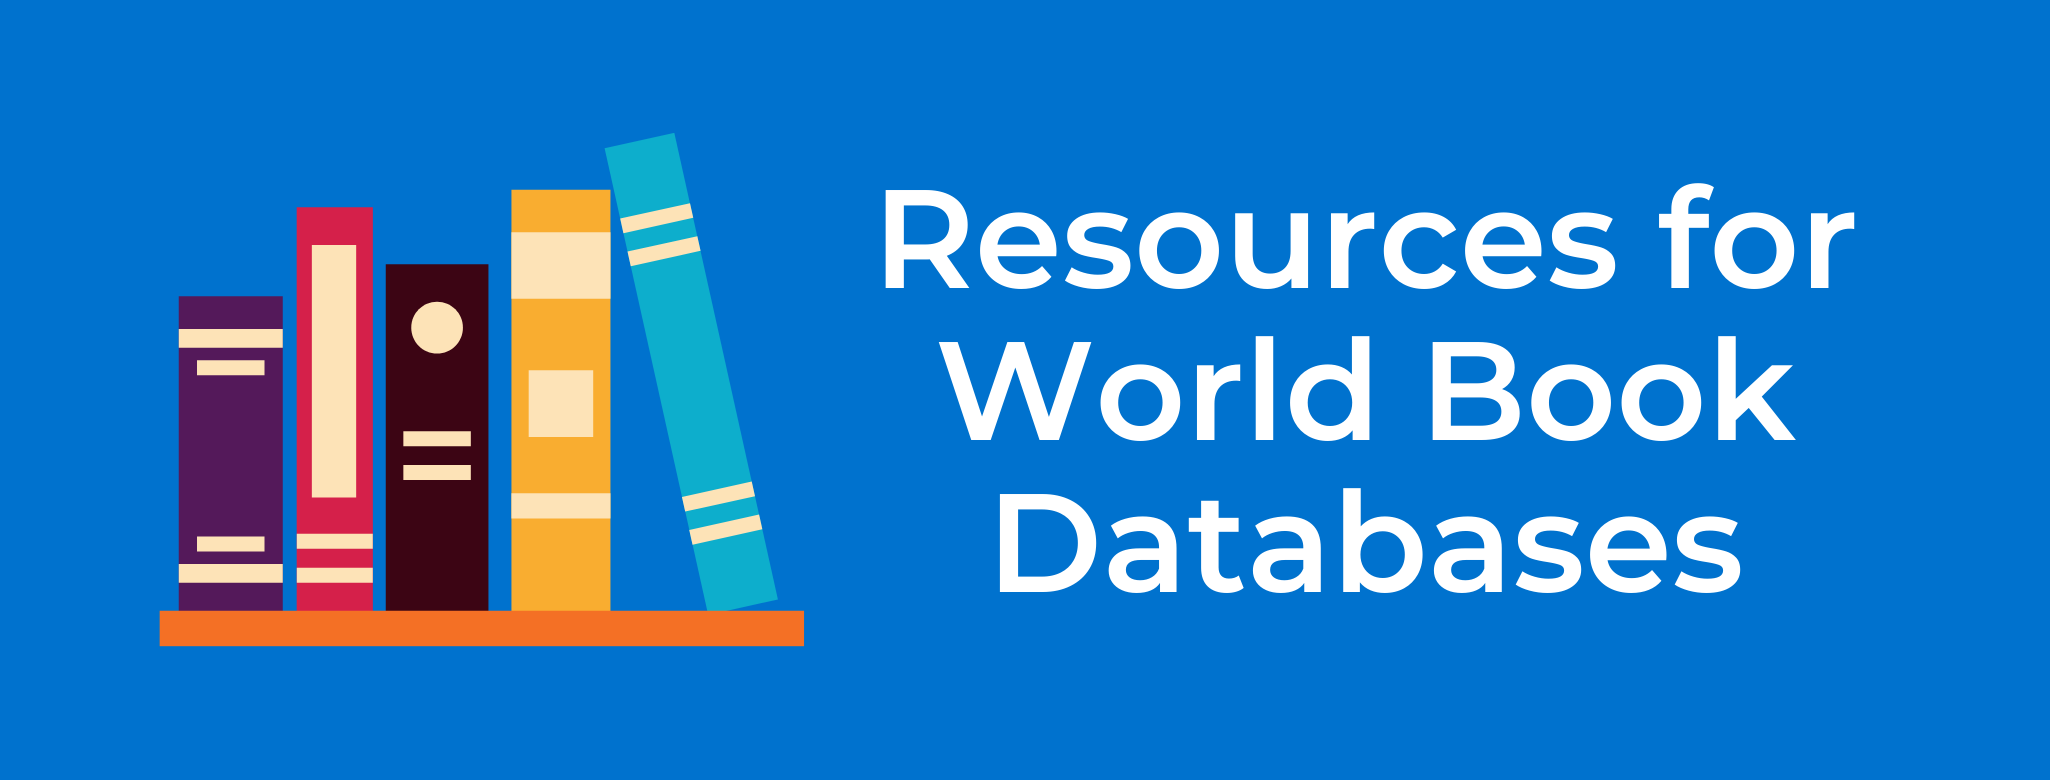 resources for world book button